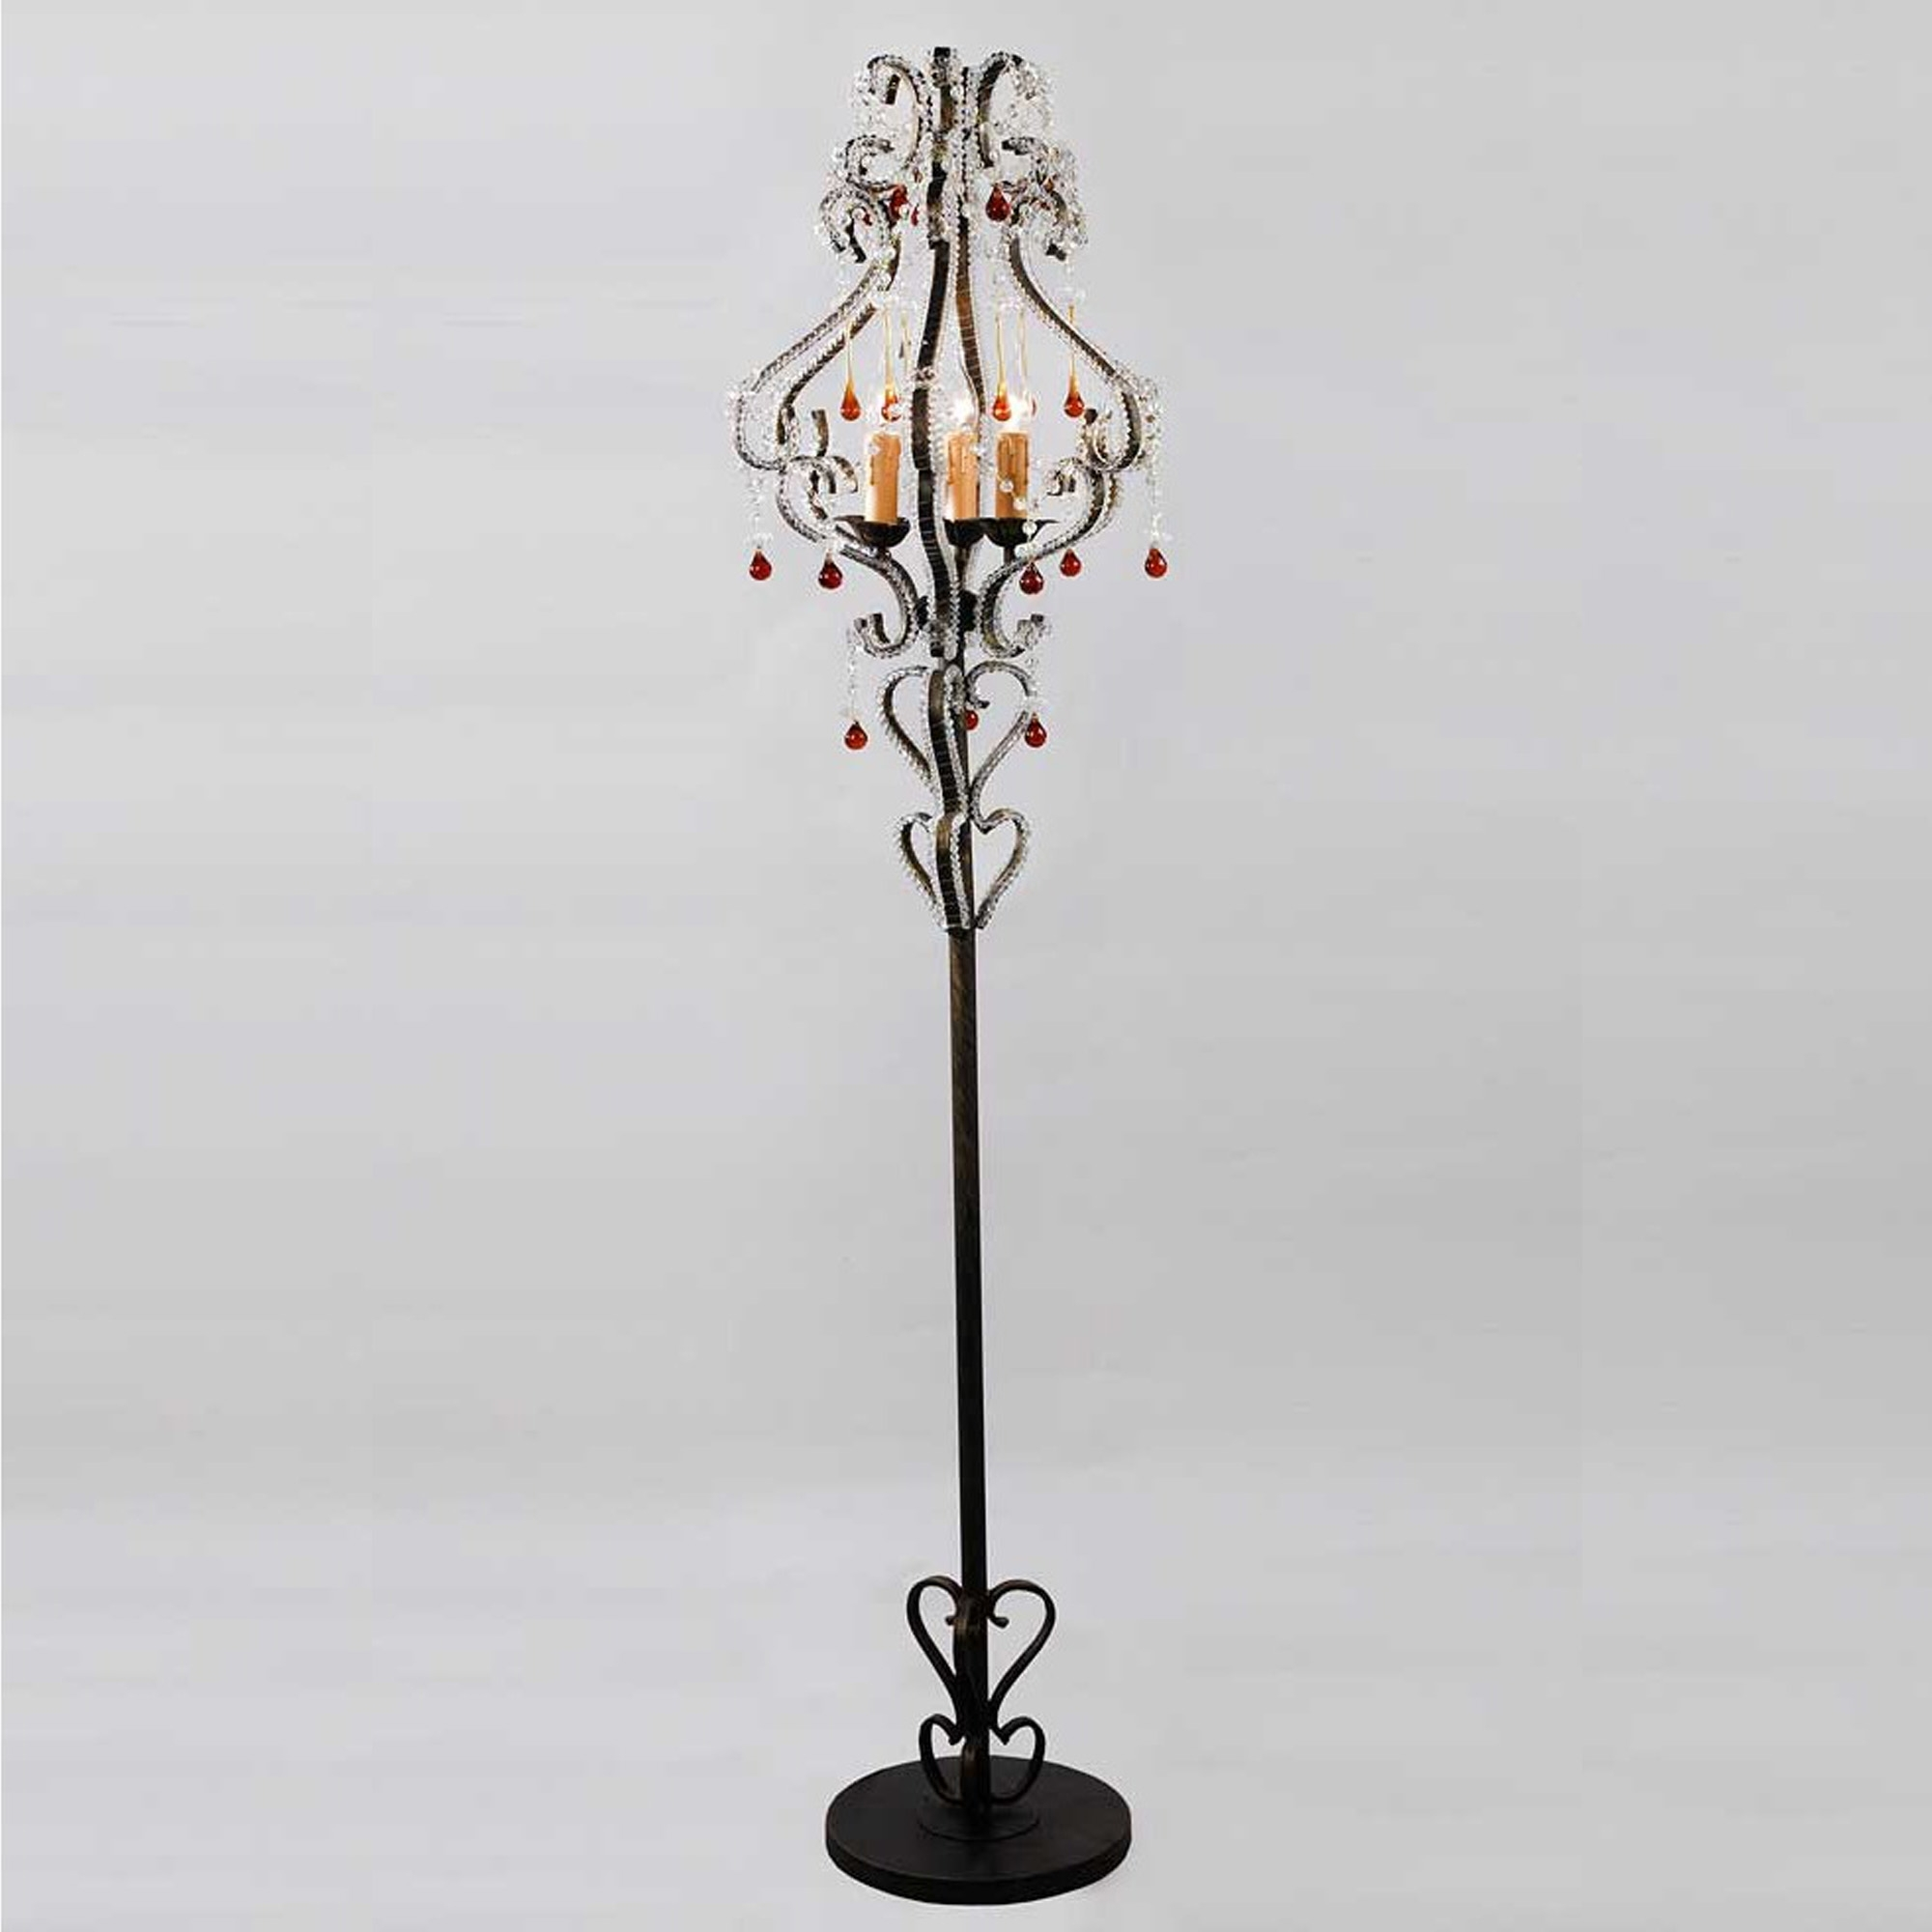 french style lighting. Antique French Style Floor Lamp Lighting